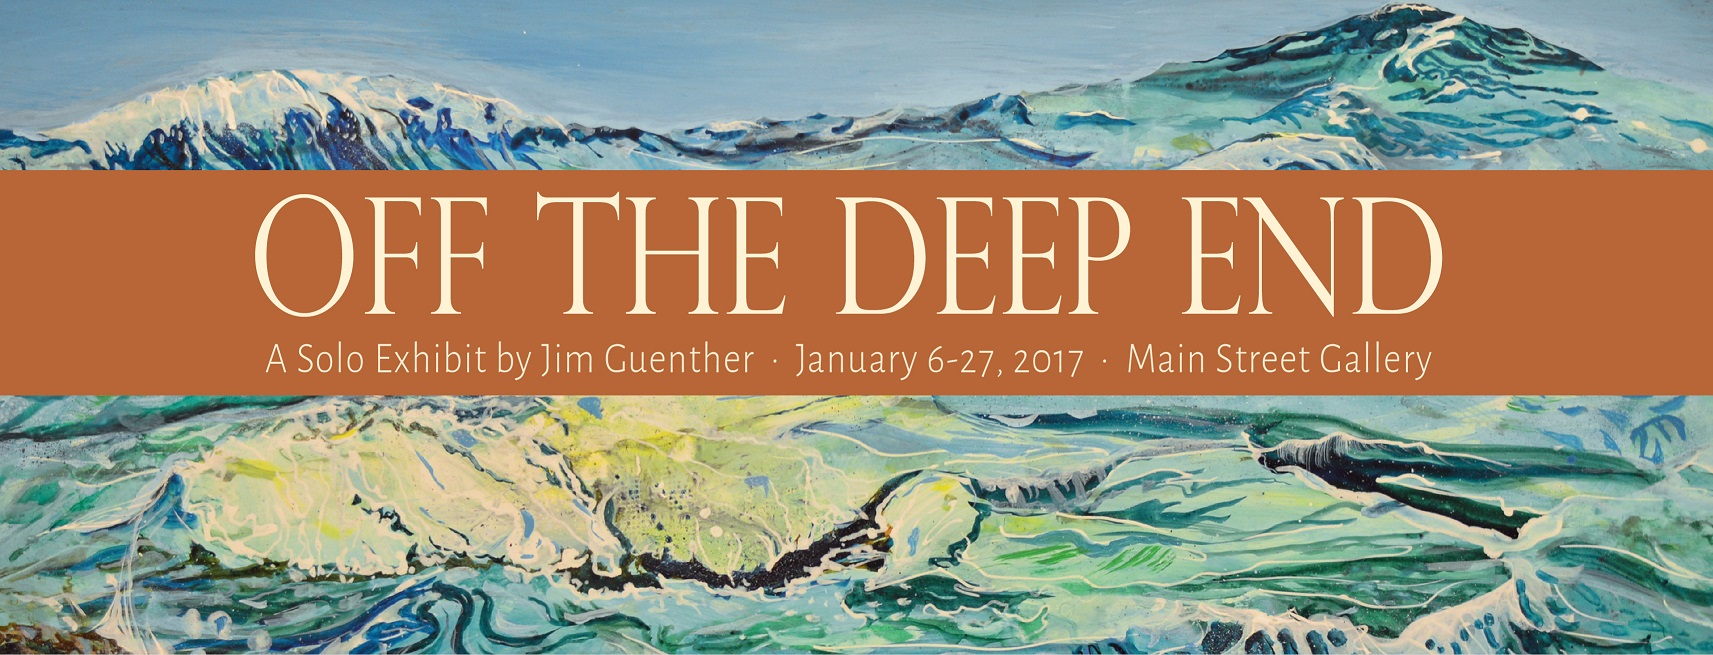 "January 6-27, 2017: Jim Guenther – ""Off the Deep End"""